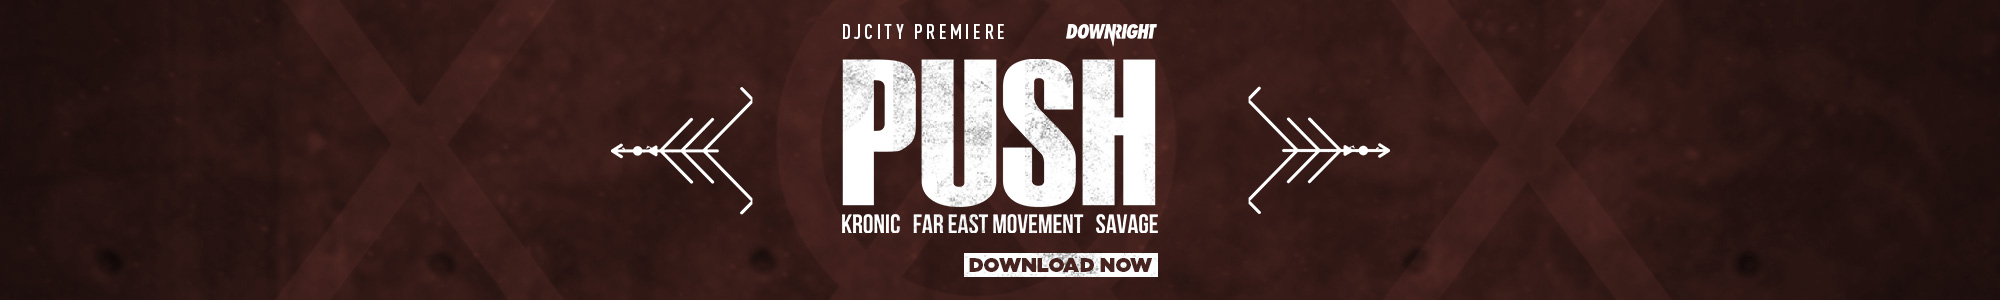 Kronic Far East Movement Savage - Push